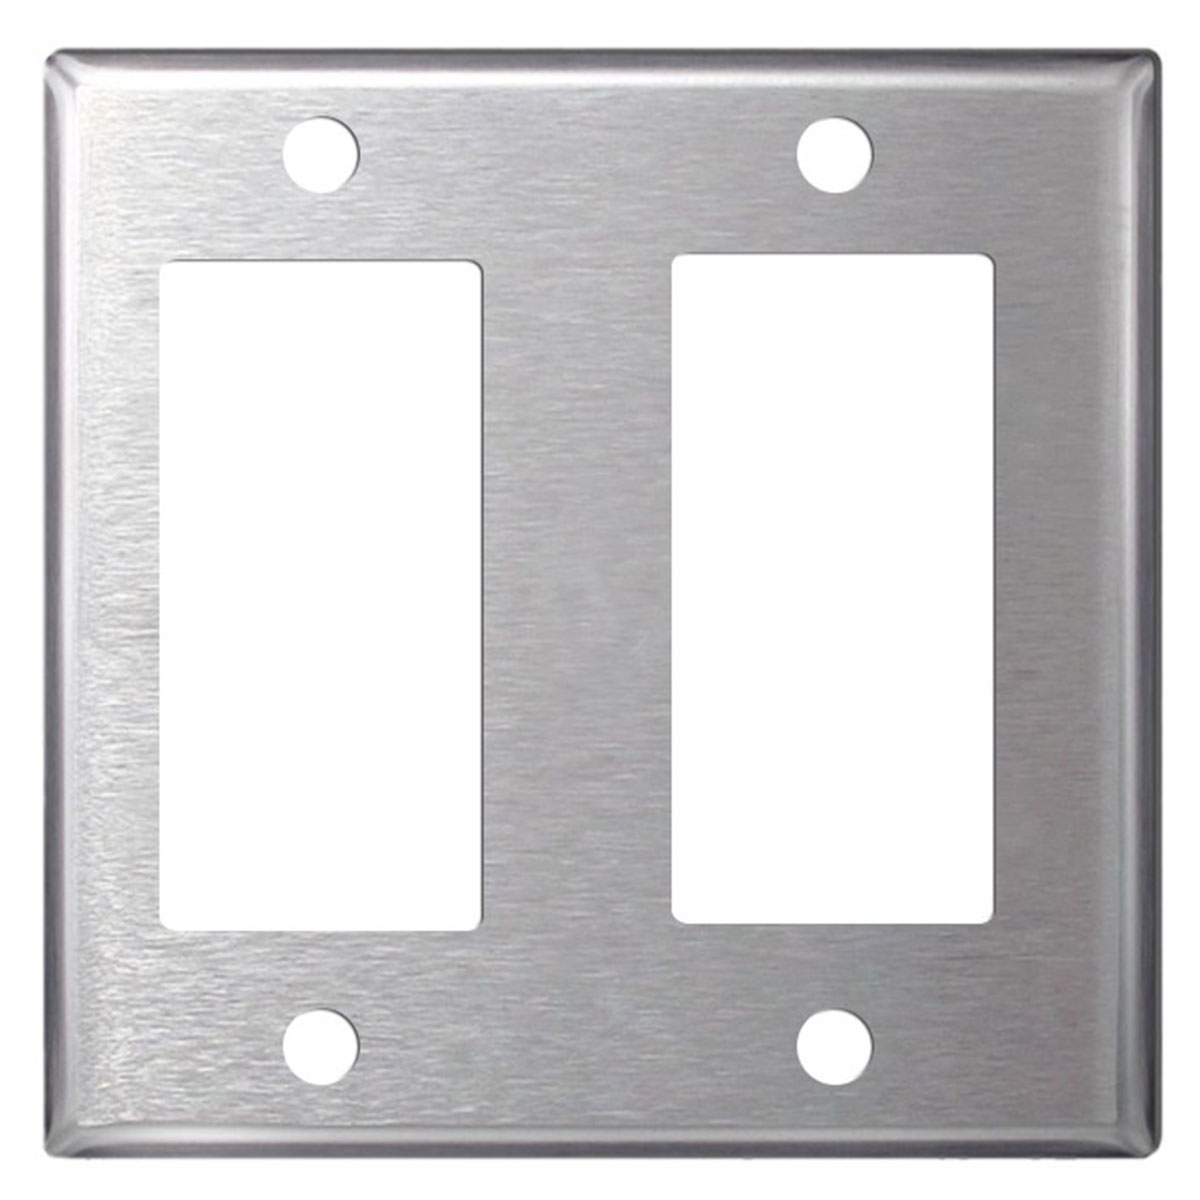 Blank Switch Plate Fascinating Stainless Steel Wall Plates  Single Double Gang  Blank Toggle Decorating Design